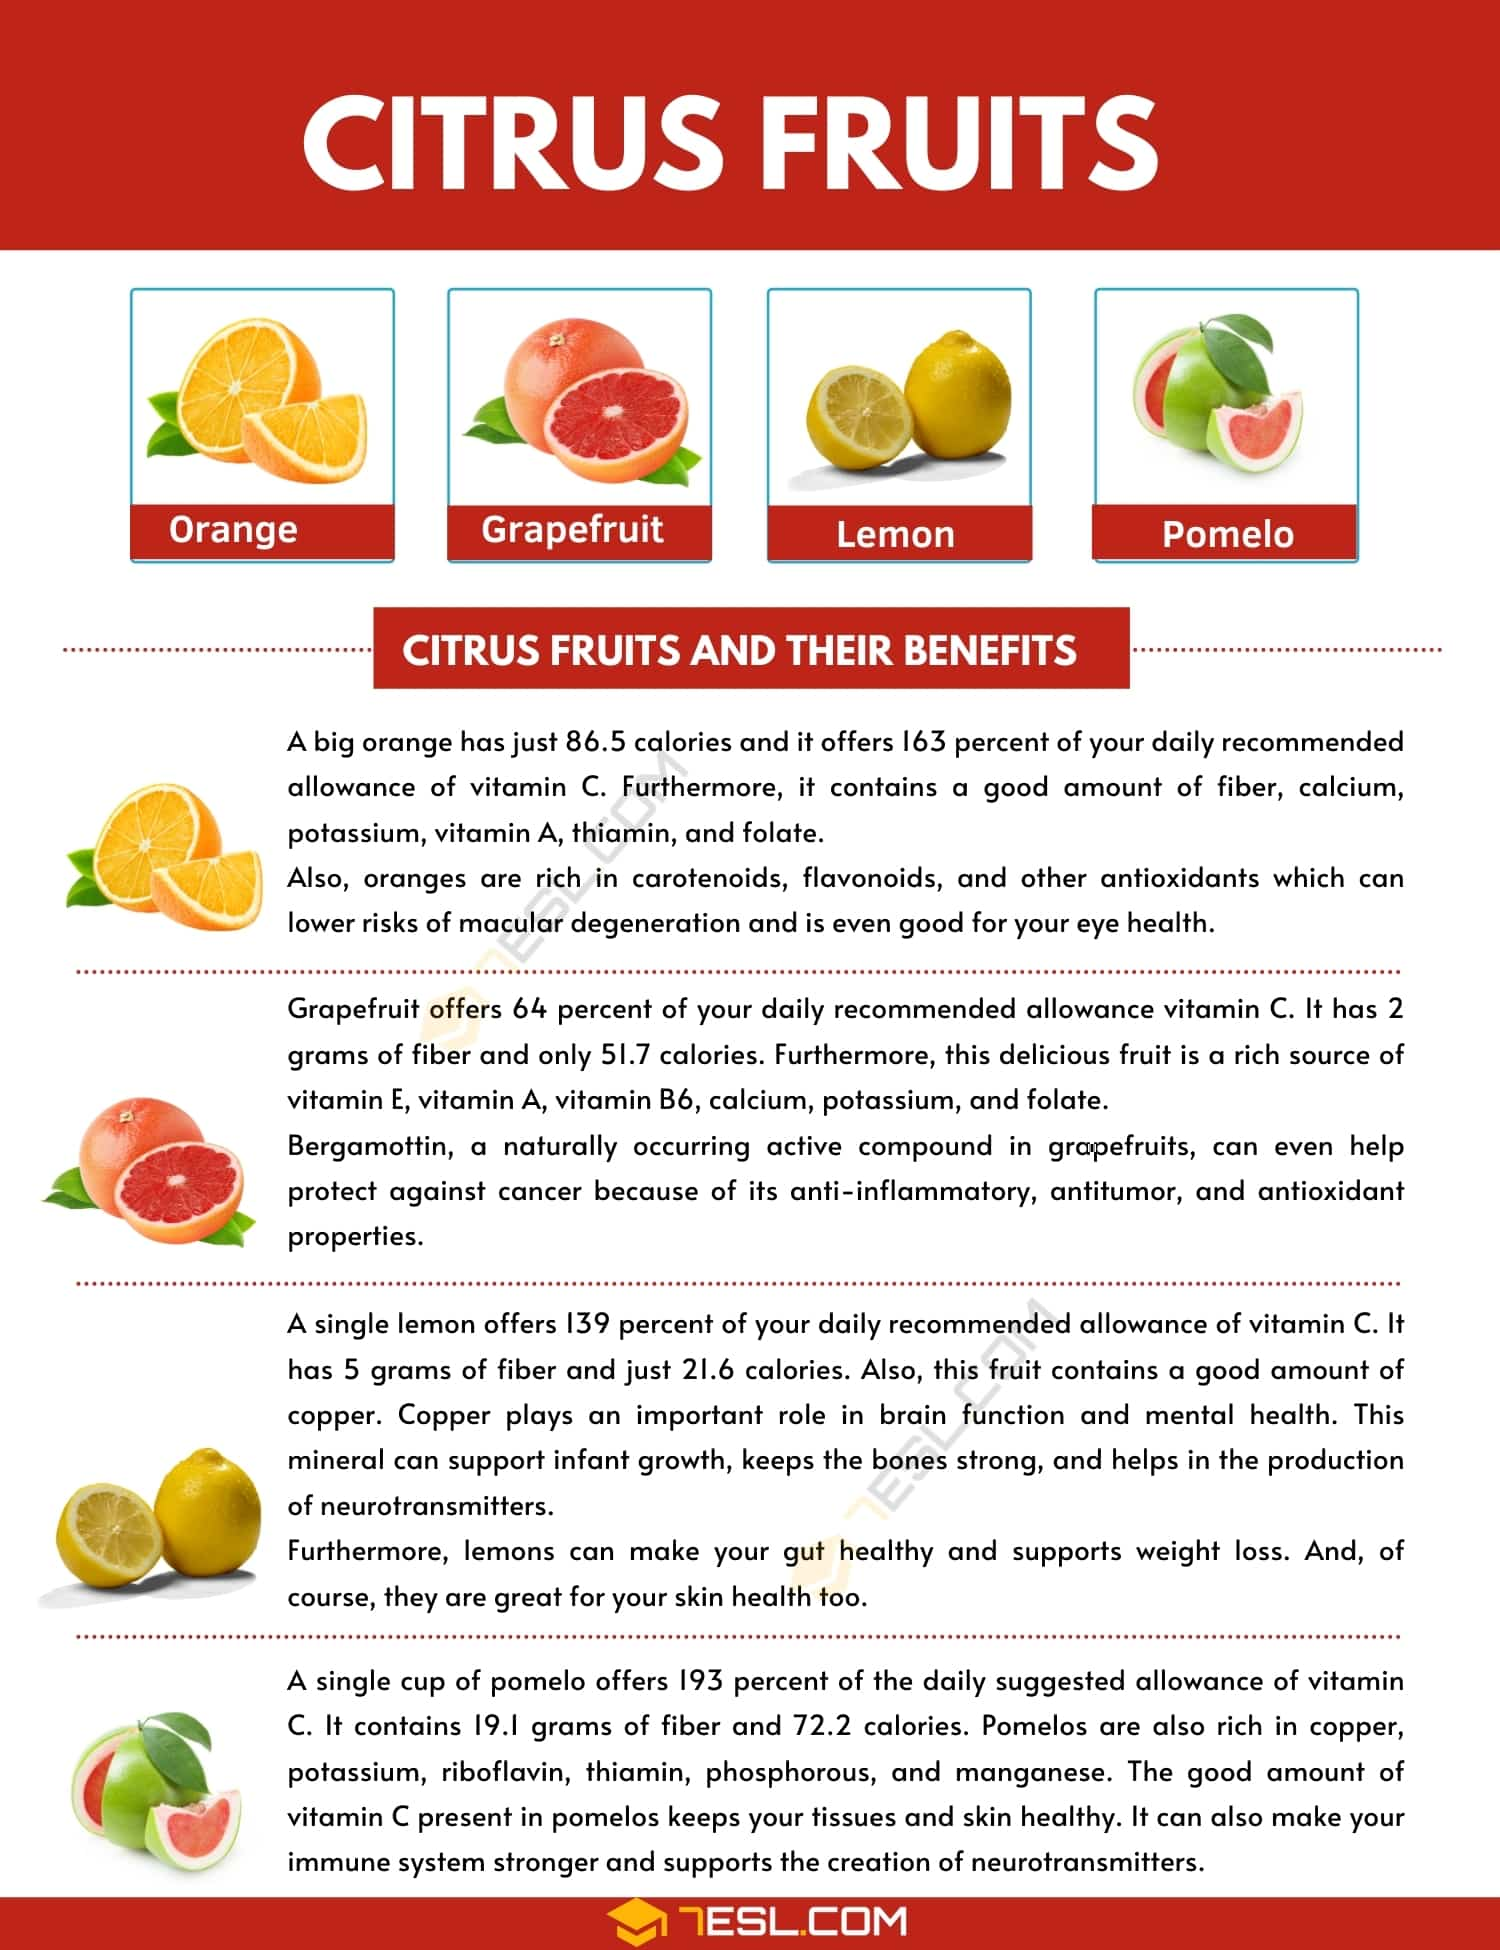 Top 4 Original Citrus Fruits and Their Powerful Health Benefits